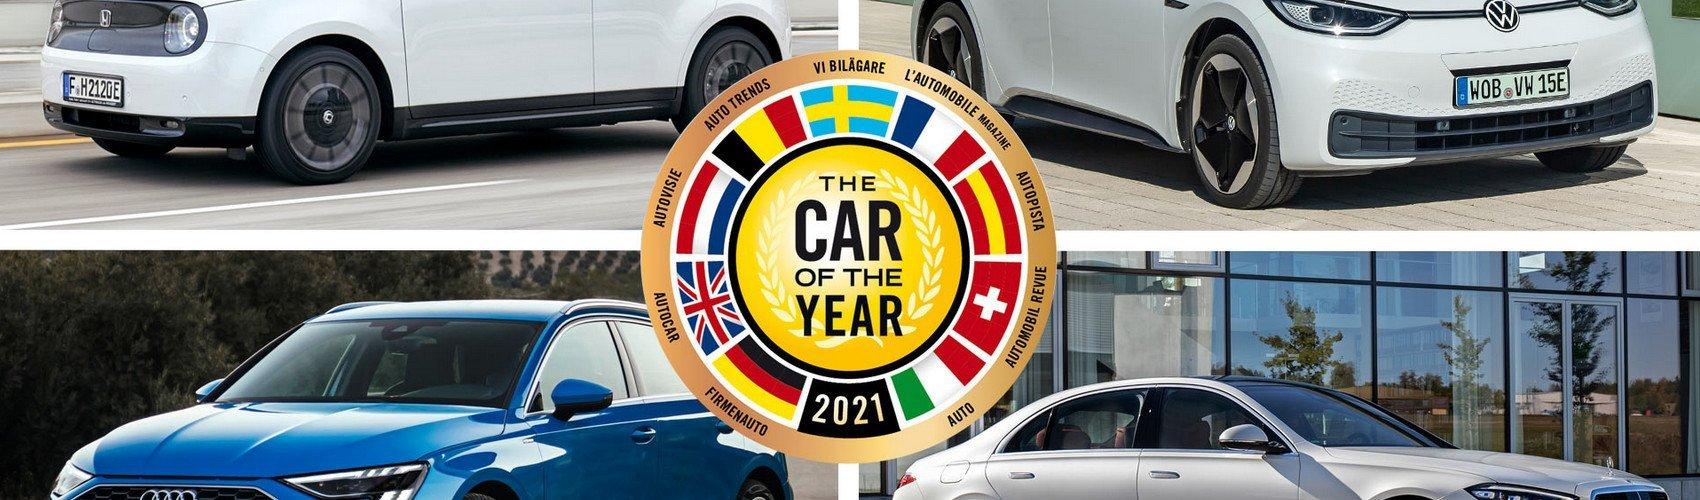 Car of the Year 2021 Finalists Announced